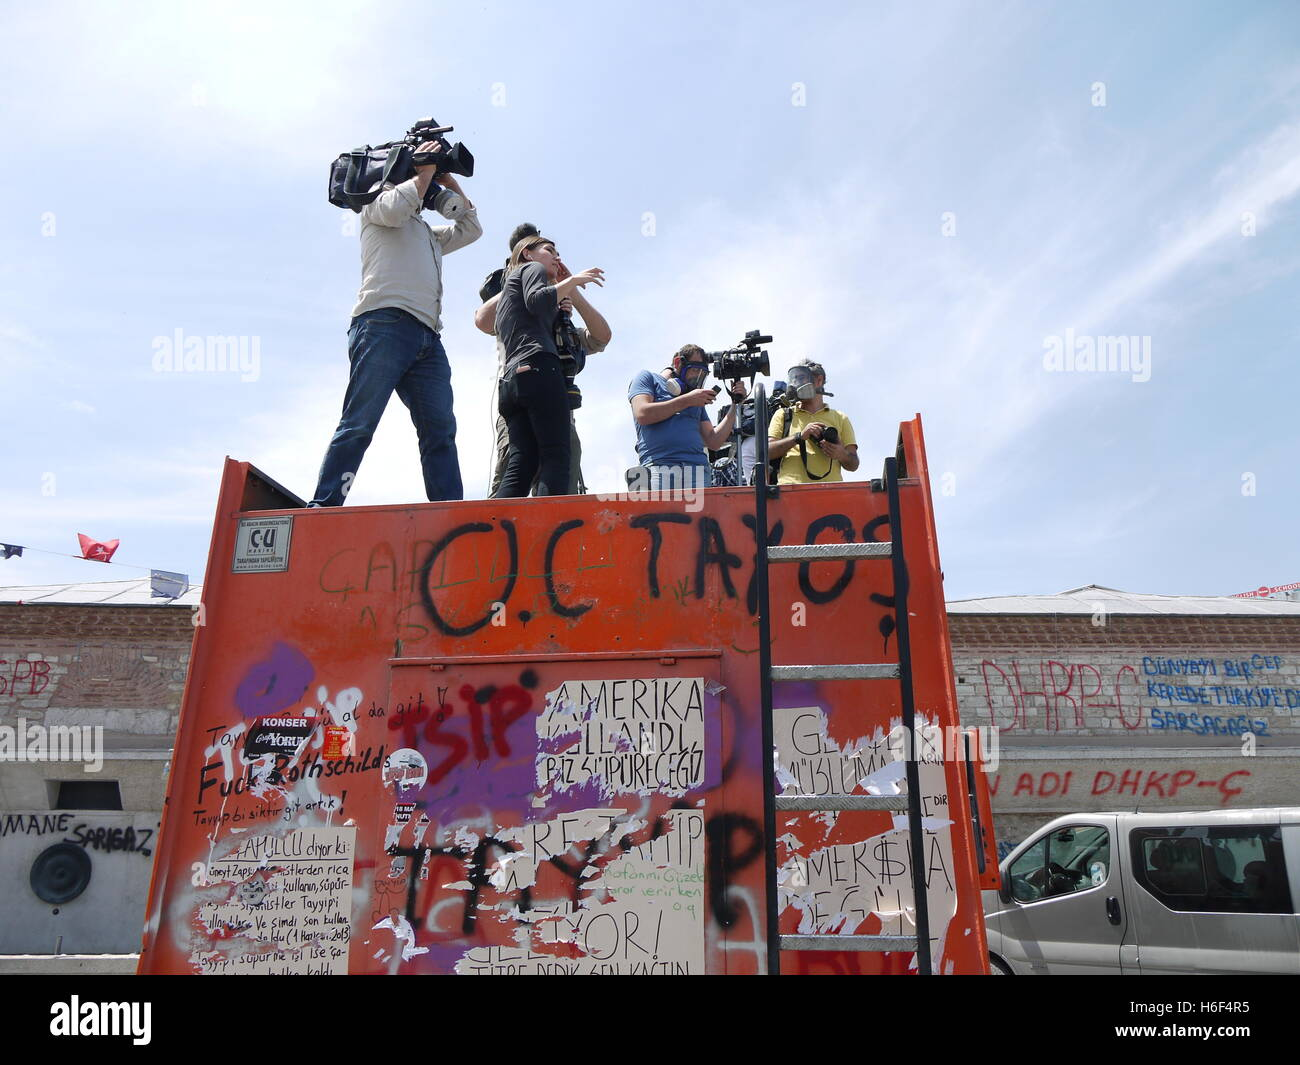 Medias at work during clashes on Taksim square in Istanbul (Turkey) between police and demonstrators - Stock Image